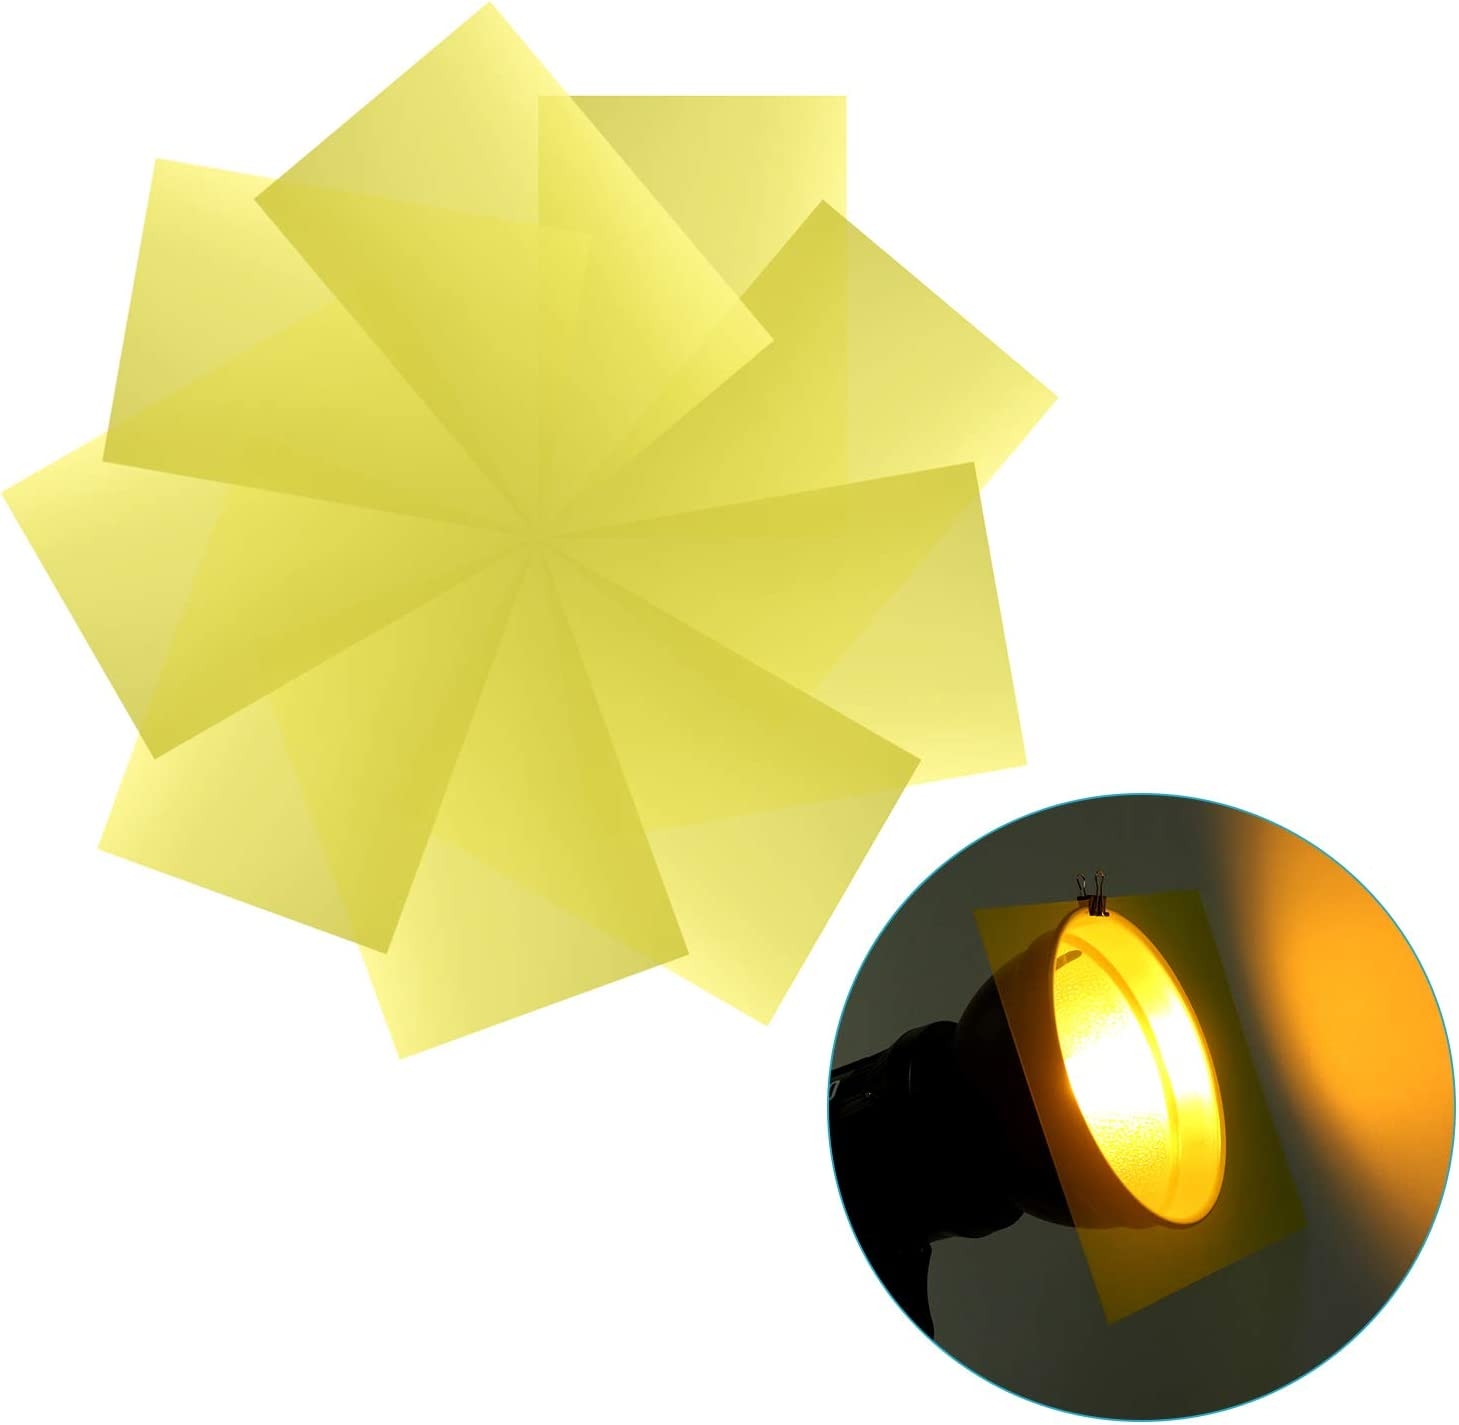 Colored Overlays LED Video Light Transparent Color Film Plastic Sheets Correction Gel Light Filter for Photo Studio Strobe Flash DJ Light 11.8x7.9 inches Neewer 9-Pack Gel Filter etc Yellow